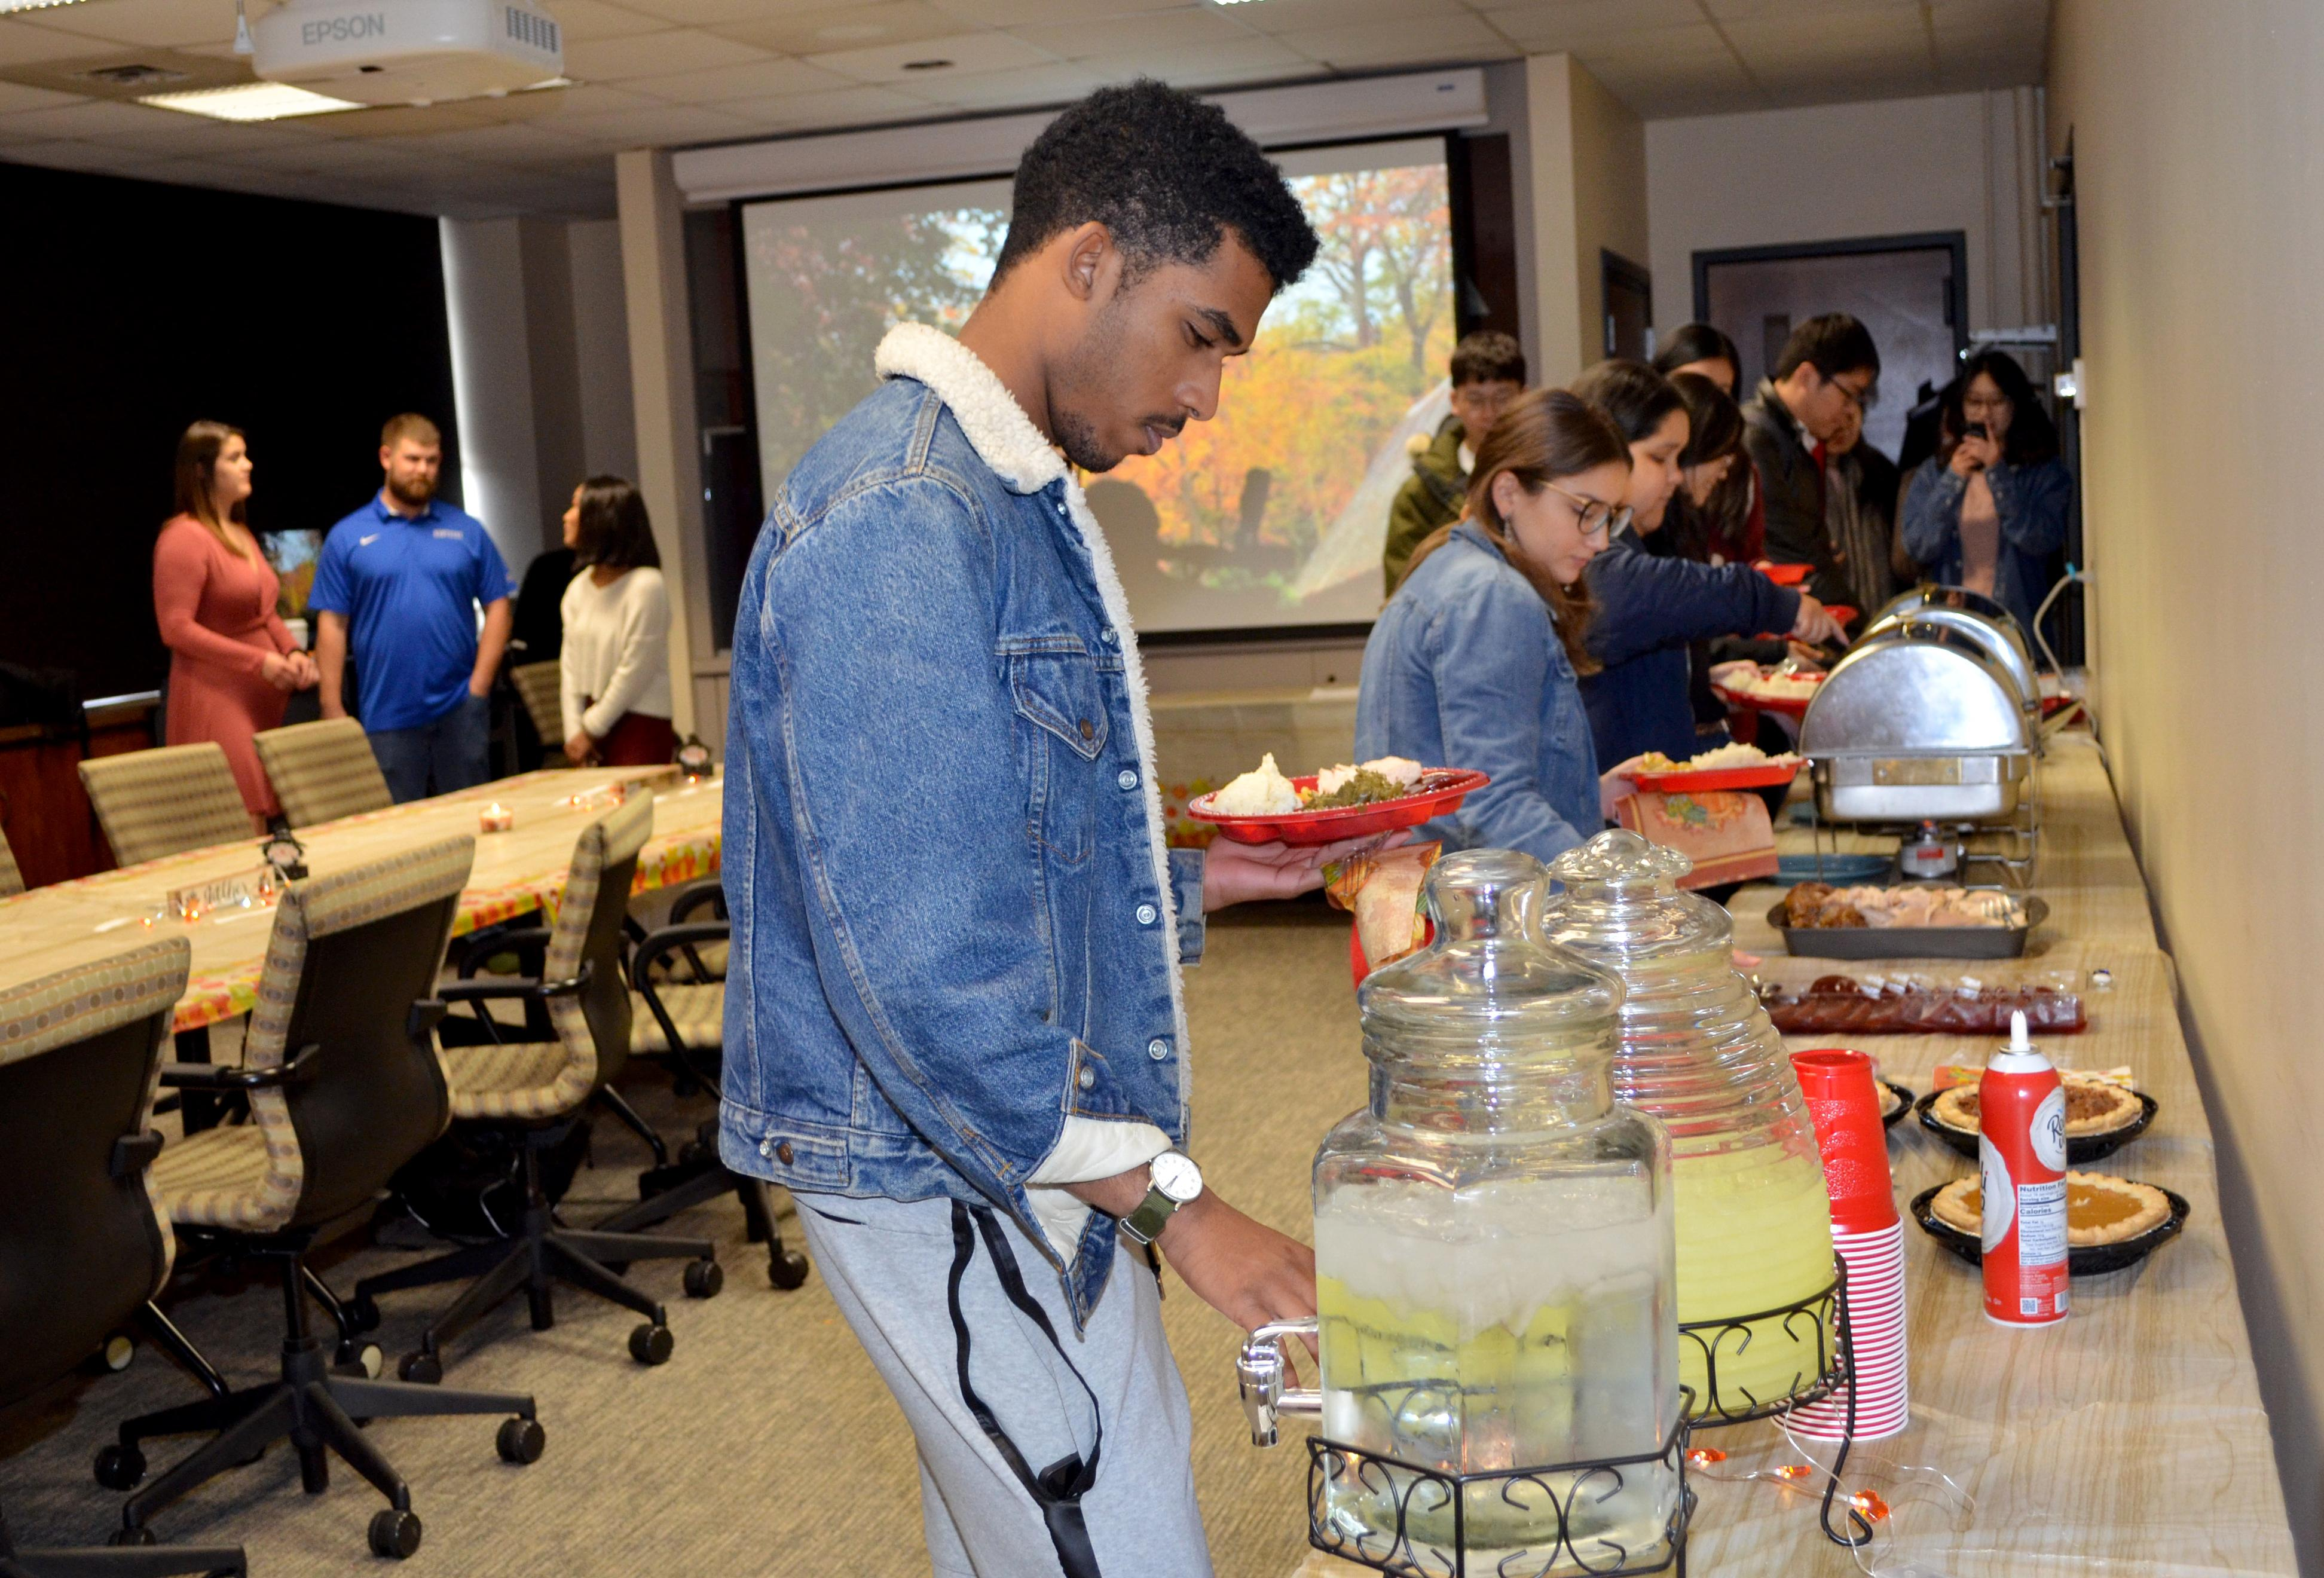 UK junior Ahmed Hamad pours some lemonade while making his way through the Thanksgiving buffet hosted by fellow UK students. Photo by Katie Pratt, UK agricultural communications.